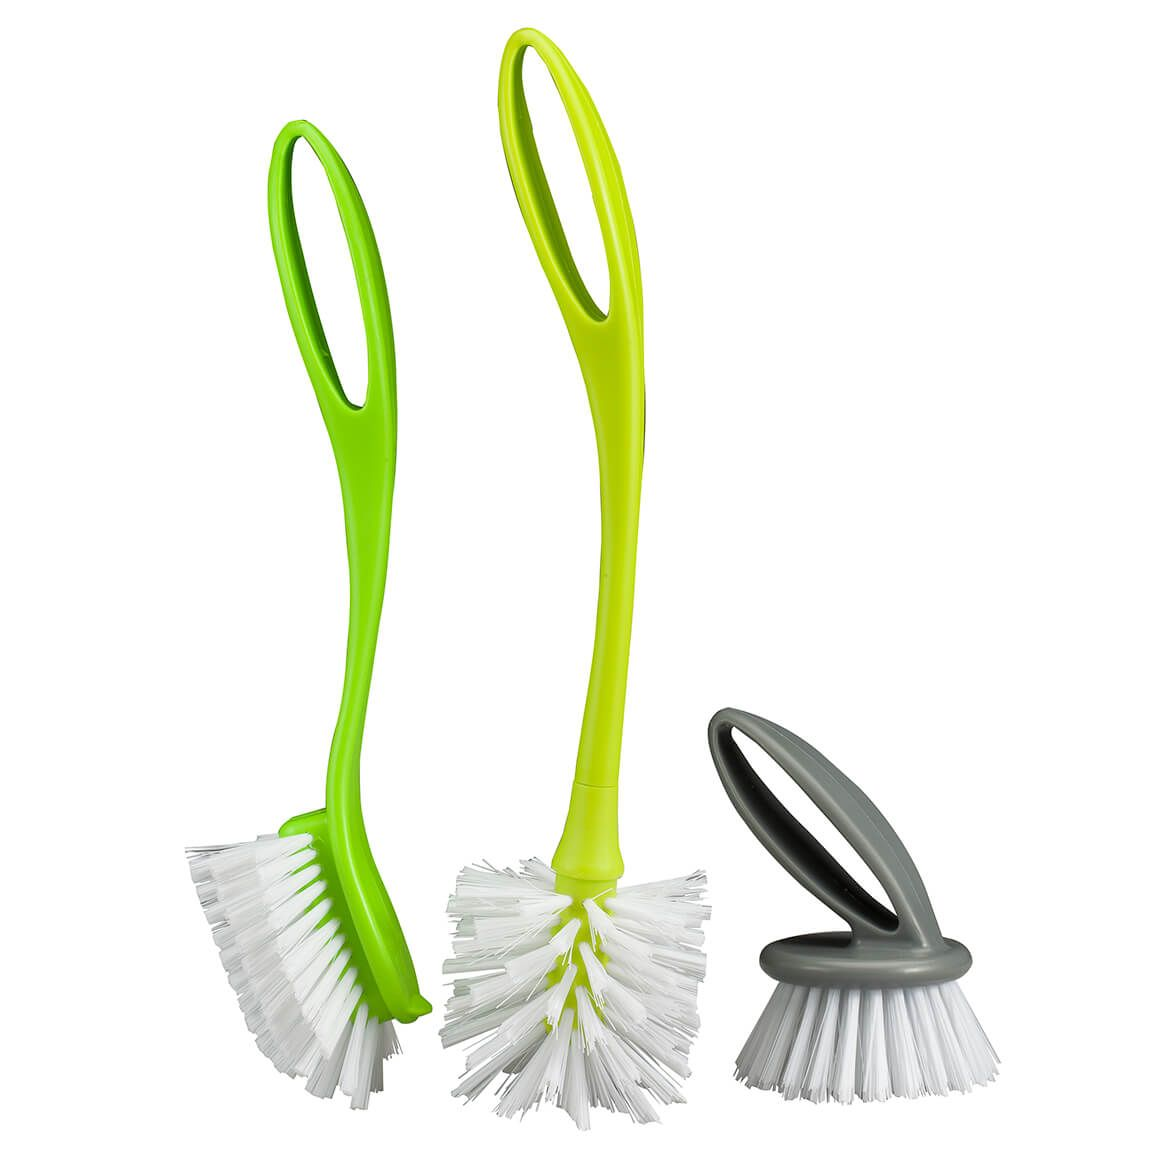 3 Pc Dish Brush Set by Home Style Kitchen-365908